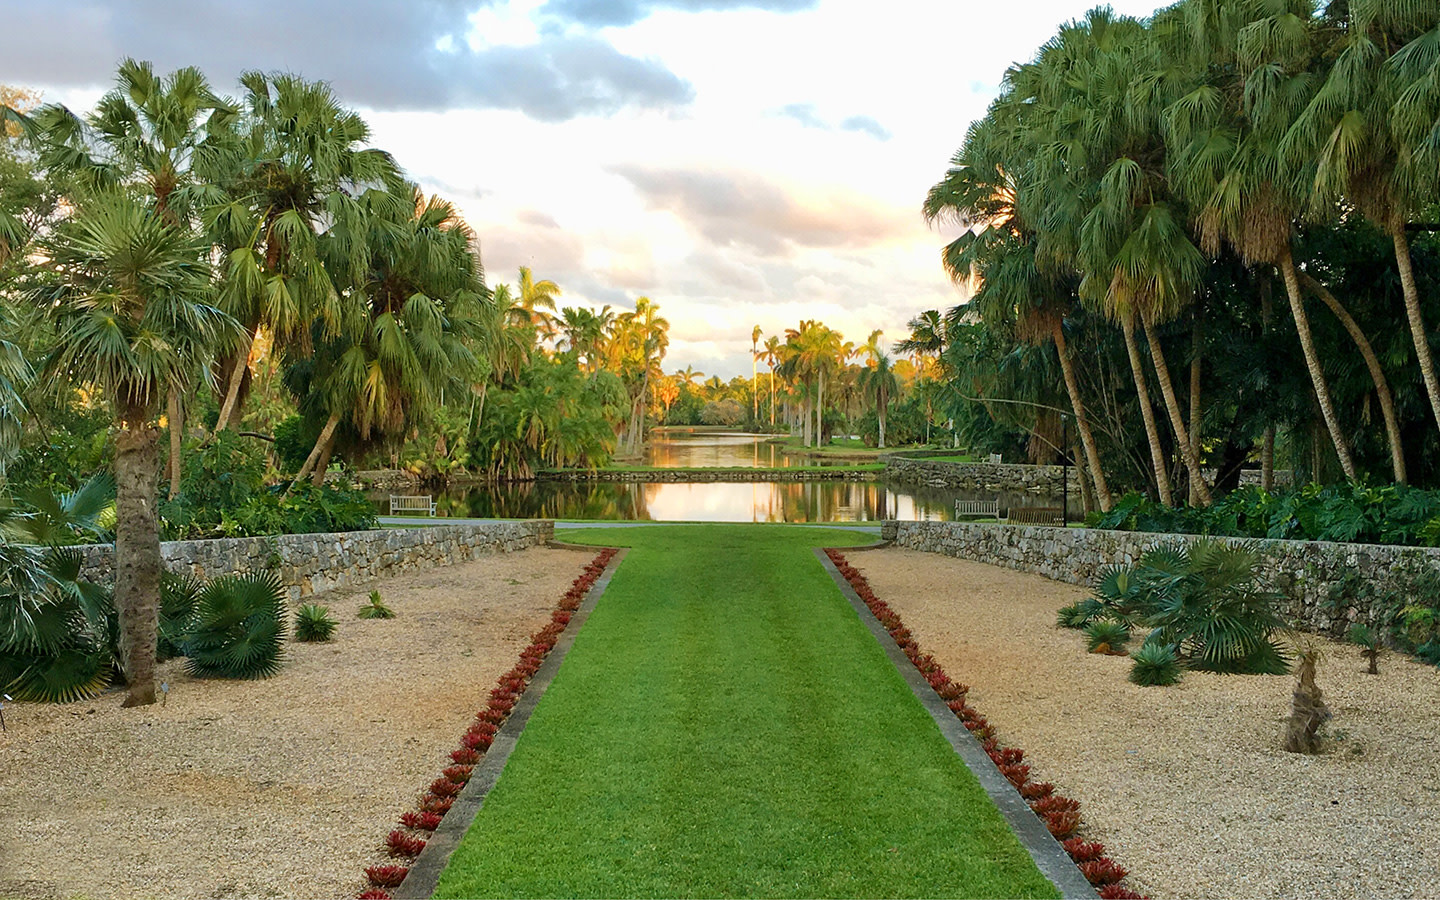 Fairchild tropical botanic garden in coral gables fl - Fairchild tropical botanic garden ...